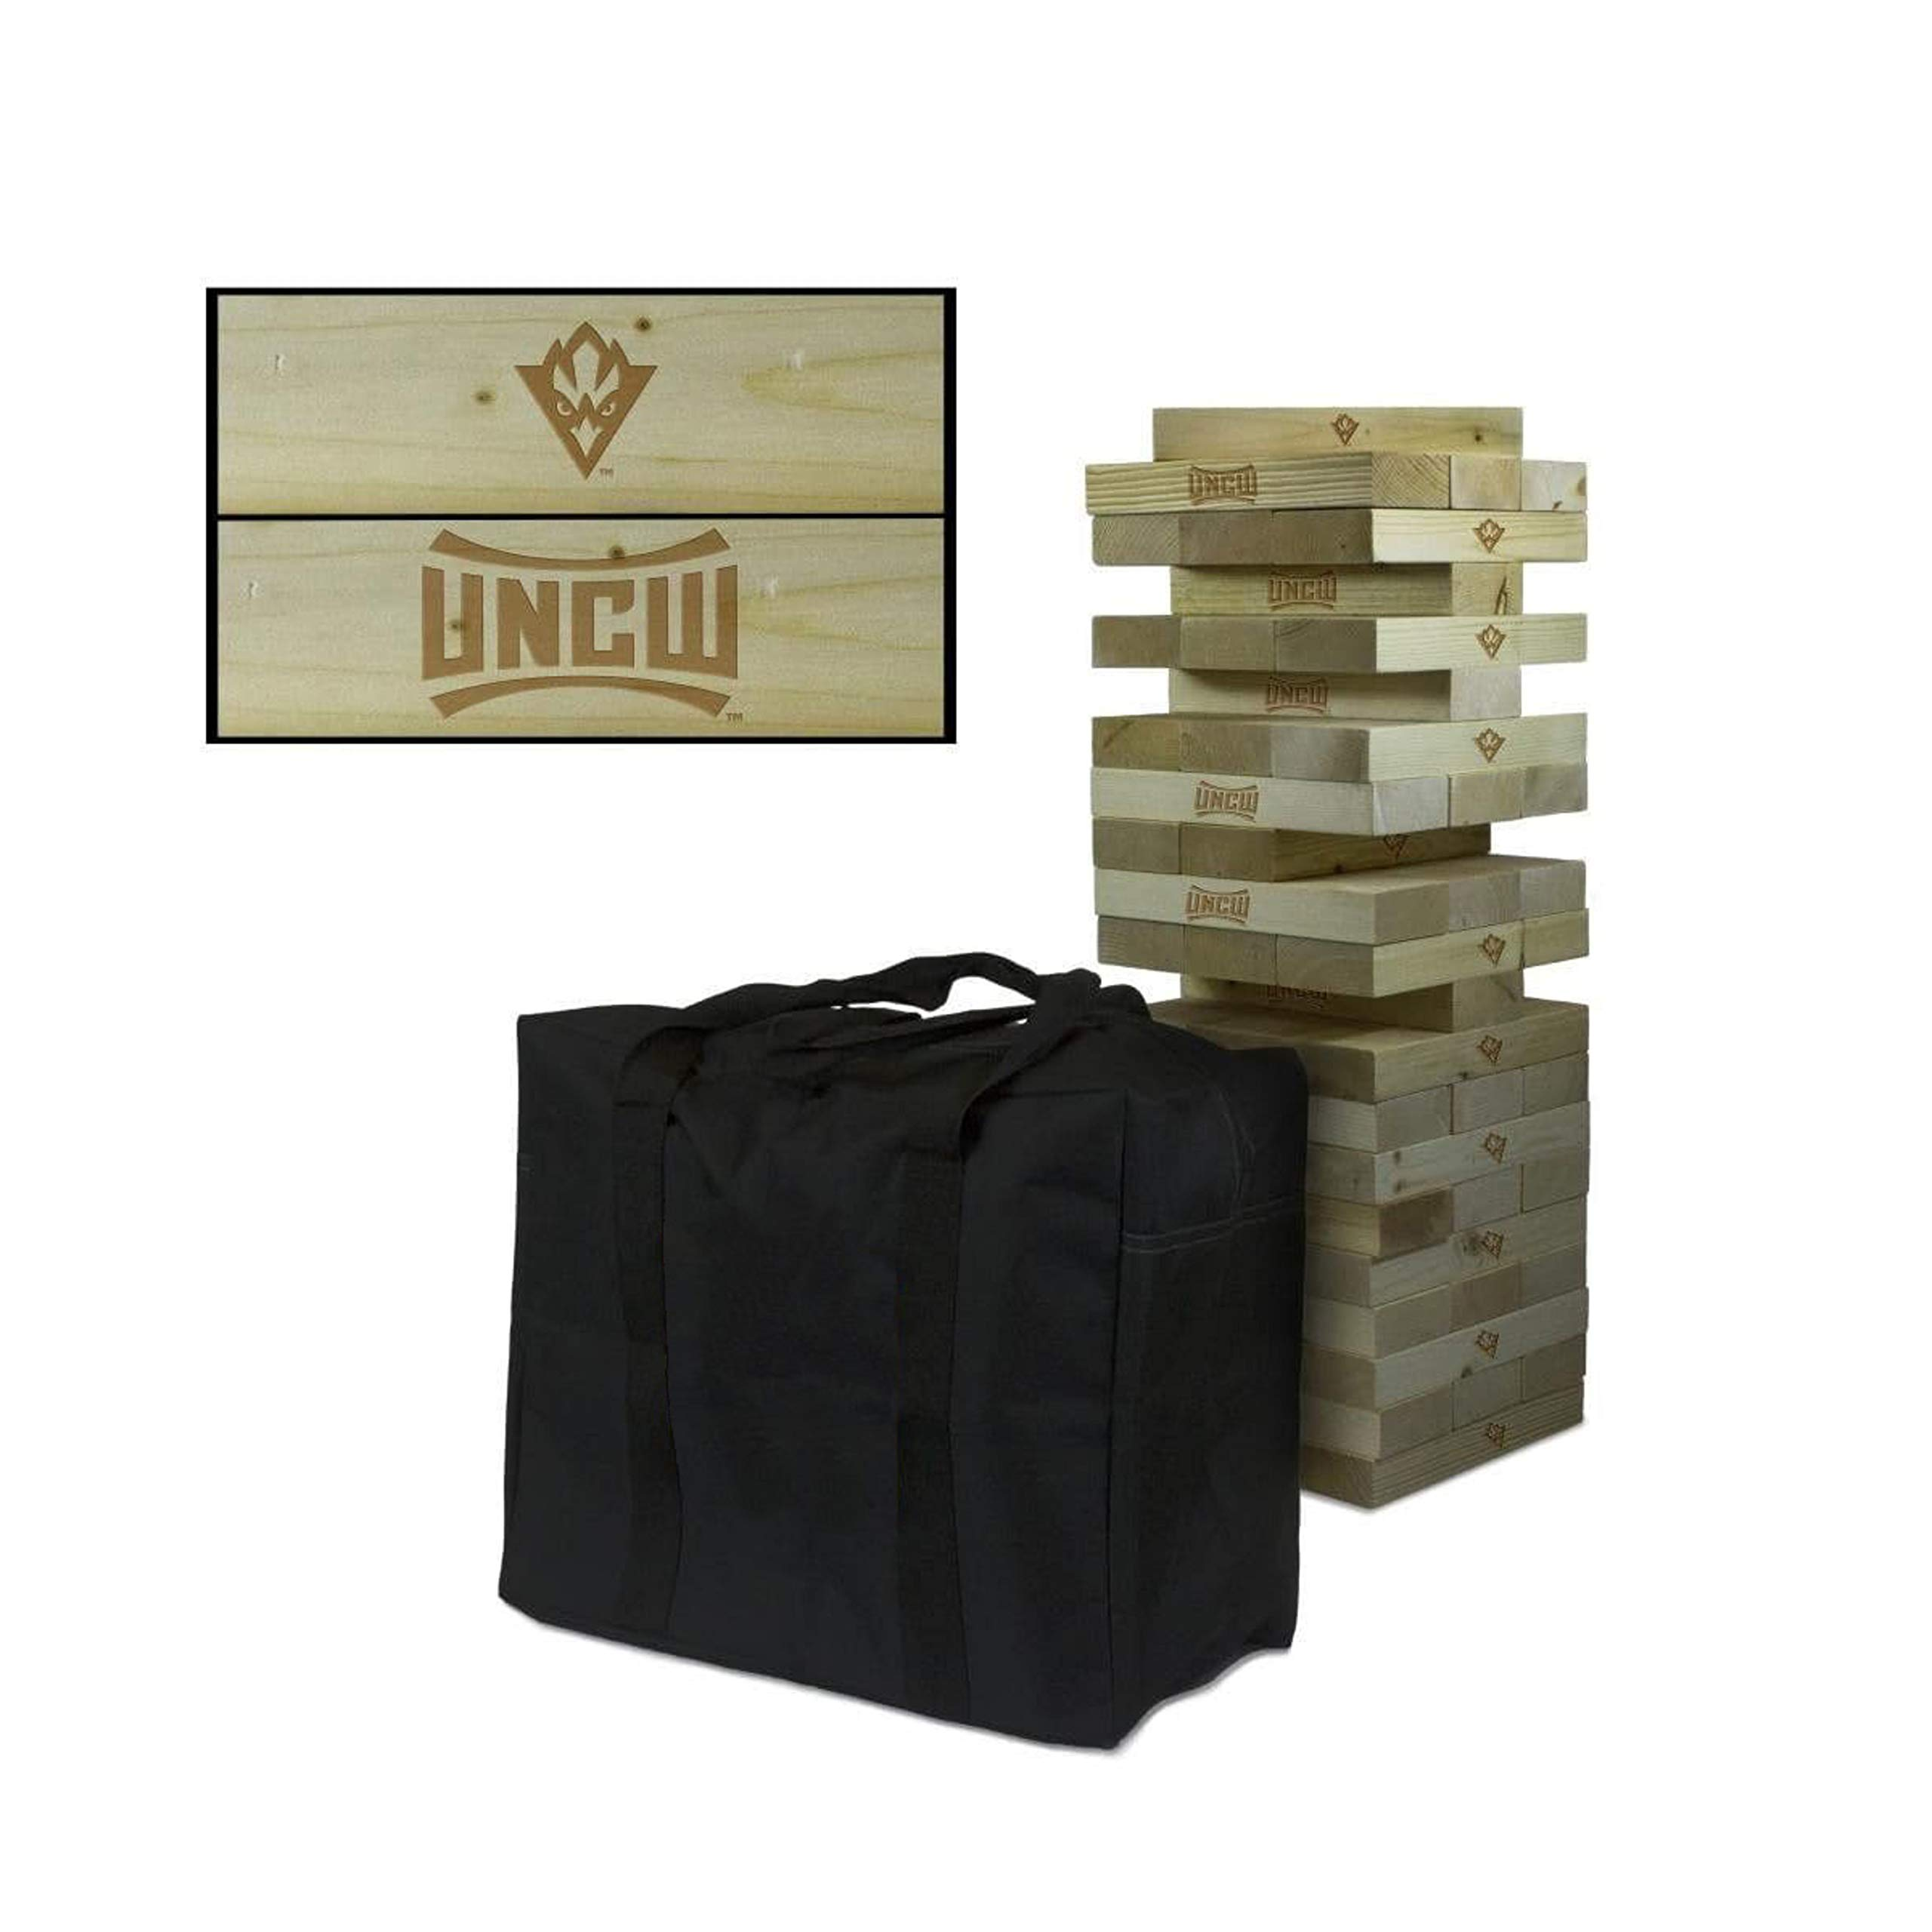 Victory Tailgate NCAA Giant Wooden Tumble Tower Game Set - North Carolina Wilmington Seahawks by Victory Tailgate